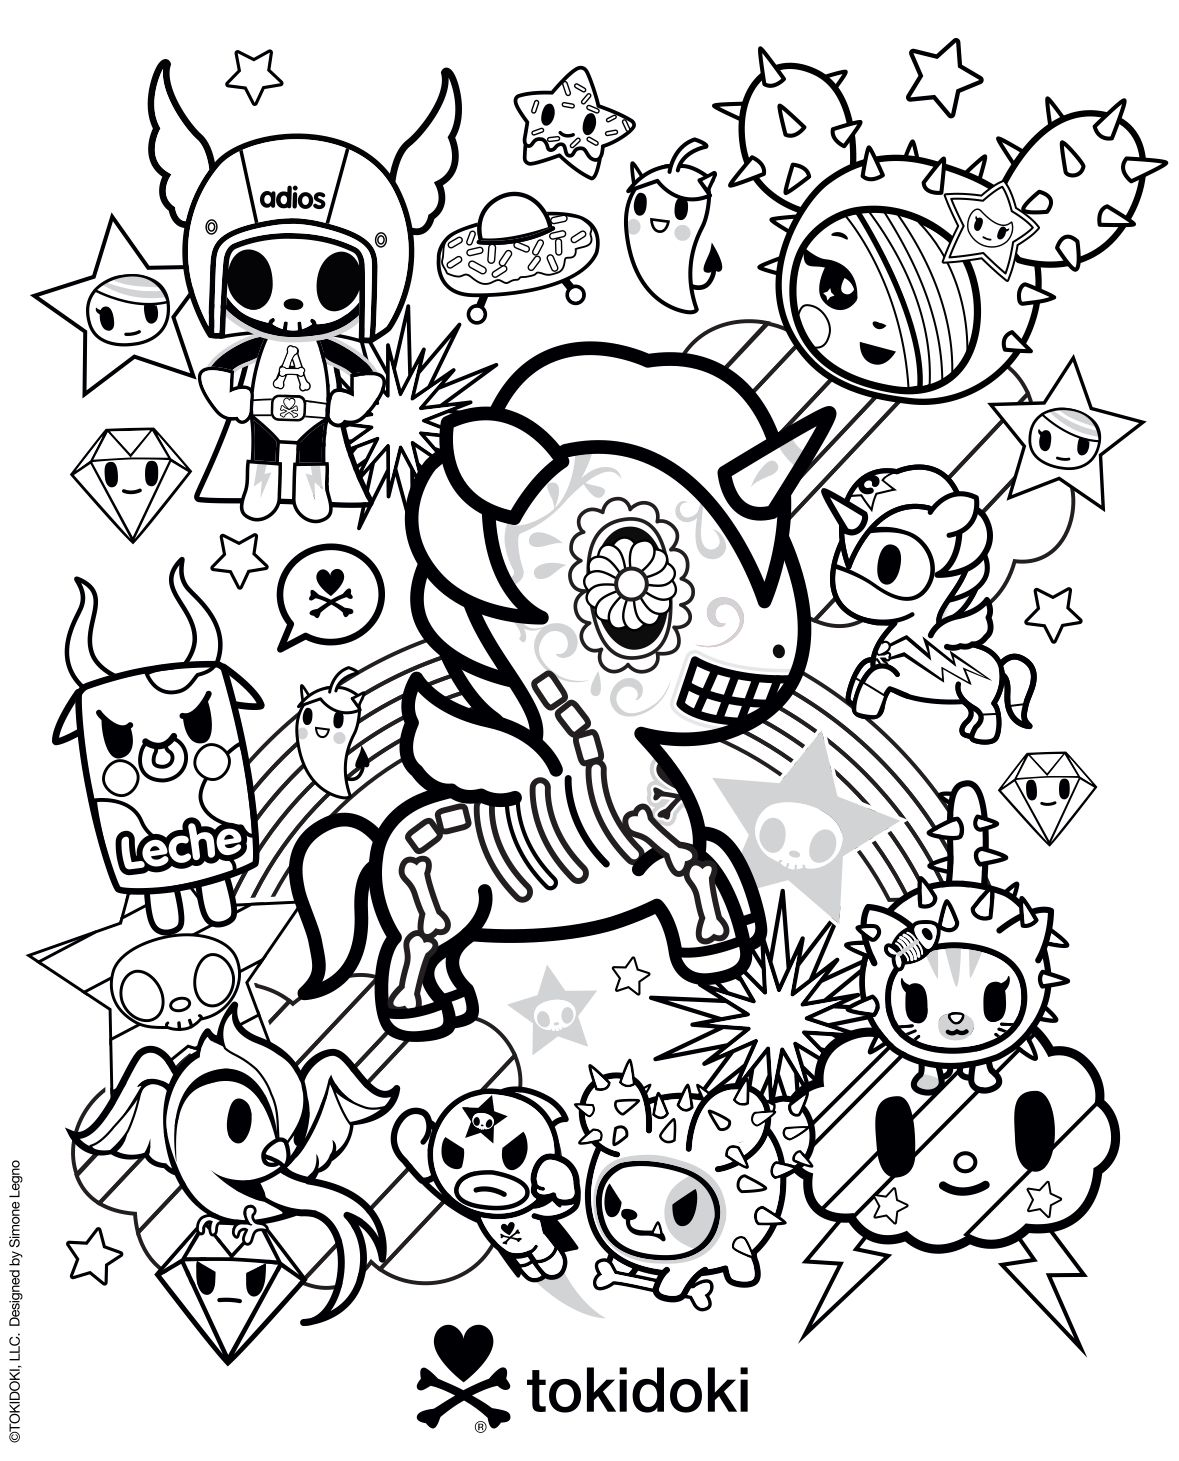 Tokidoki Colouring Page Unicorn Coloring Pages Kitty Coloring Cute Coloring Pages